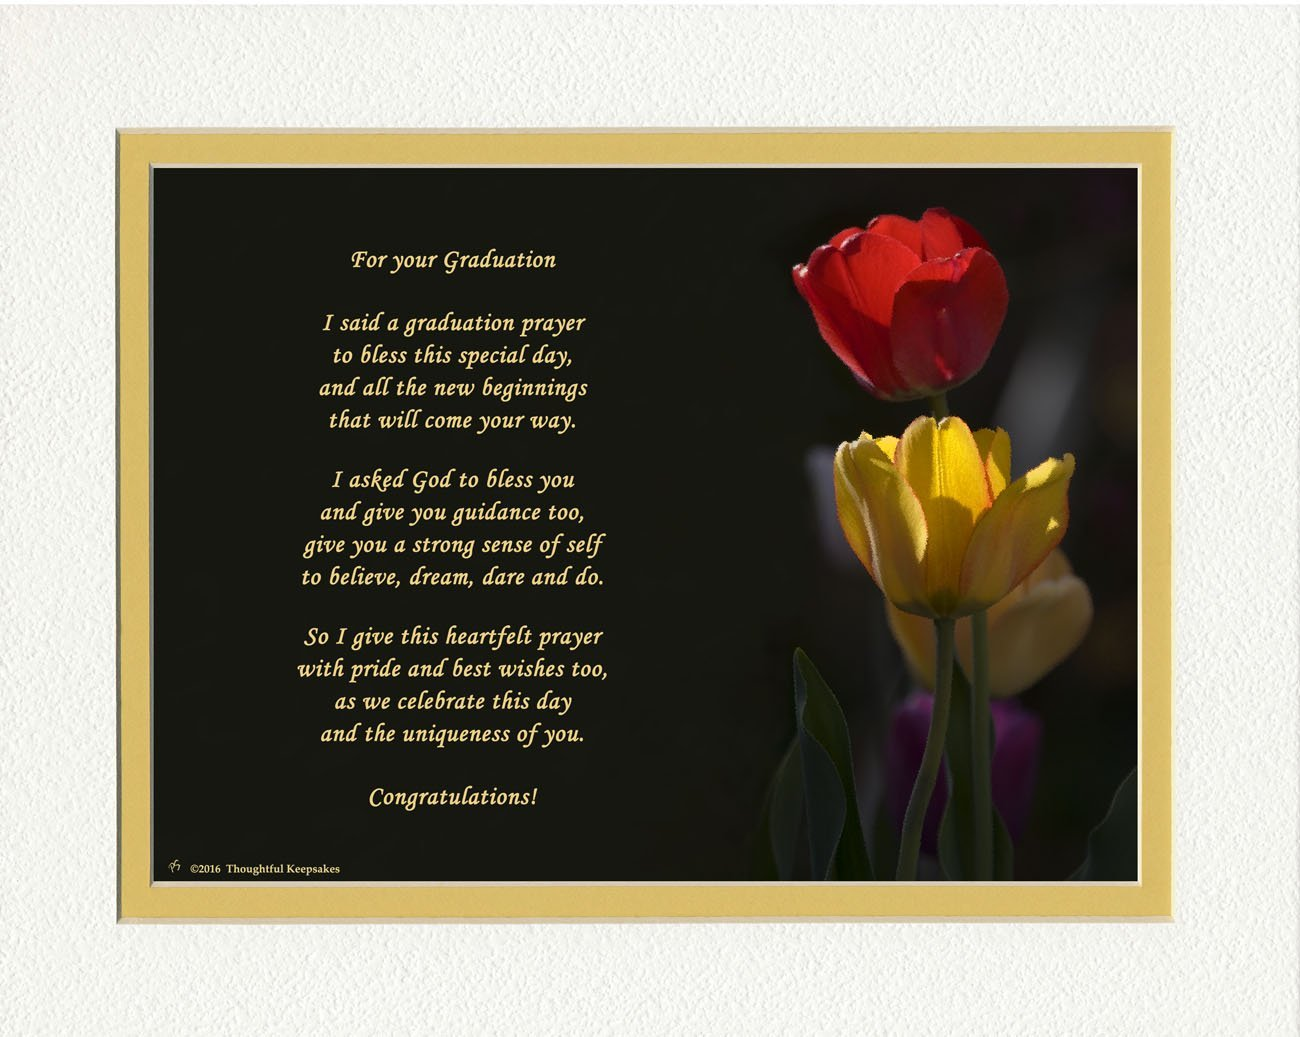 Graduation Gifts with Graduation Prayer Poem Tulips Photo, 8x10 Double Matted. A Special Keepsake Gift for Graduate. Unique High School or College